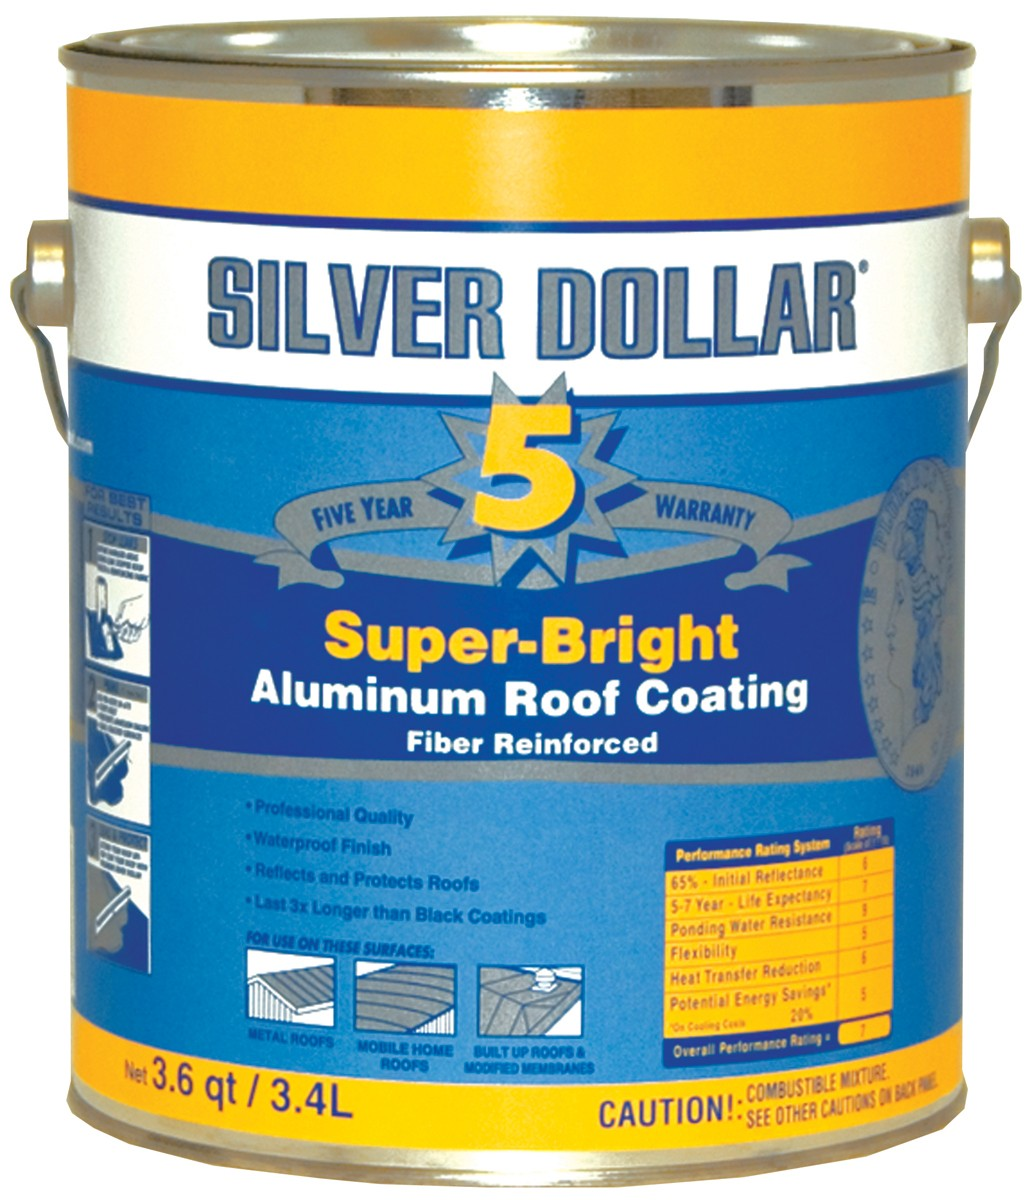 Premium Fibered Aluminum Roof Coating ~ Gallon. View Larger Image